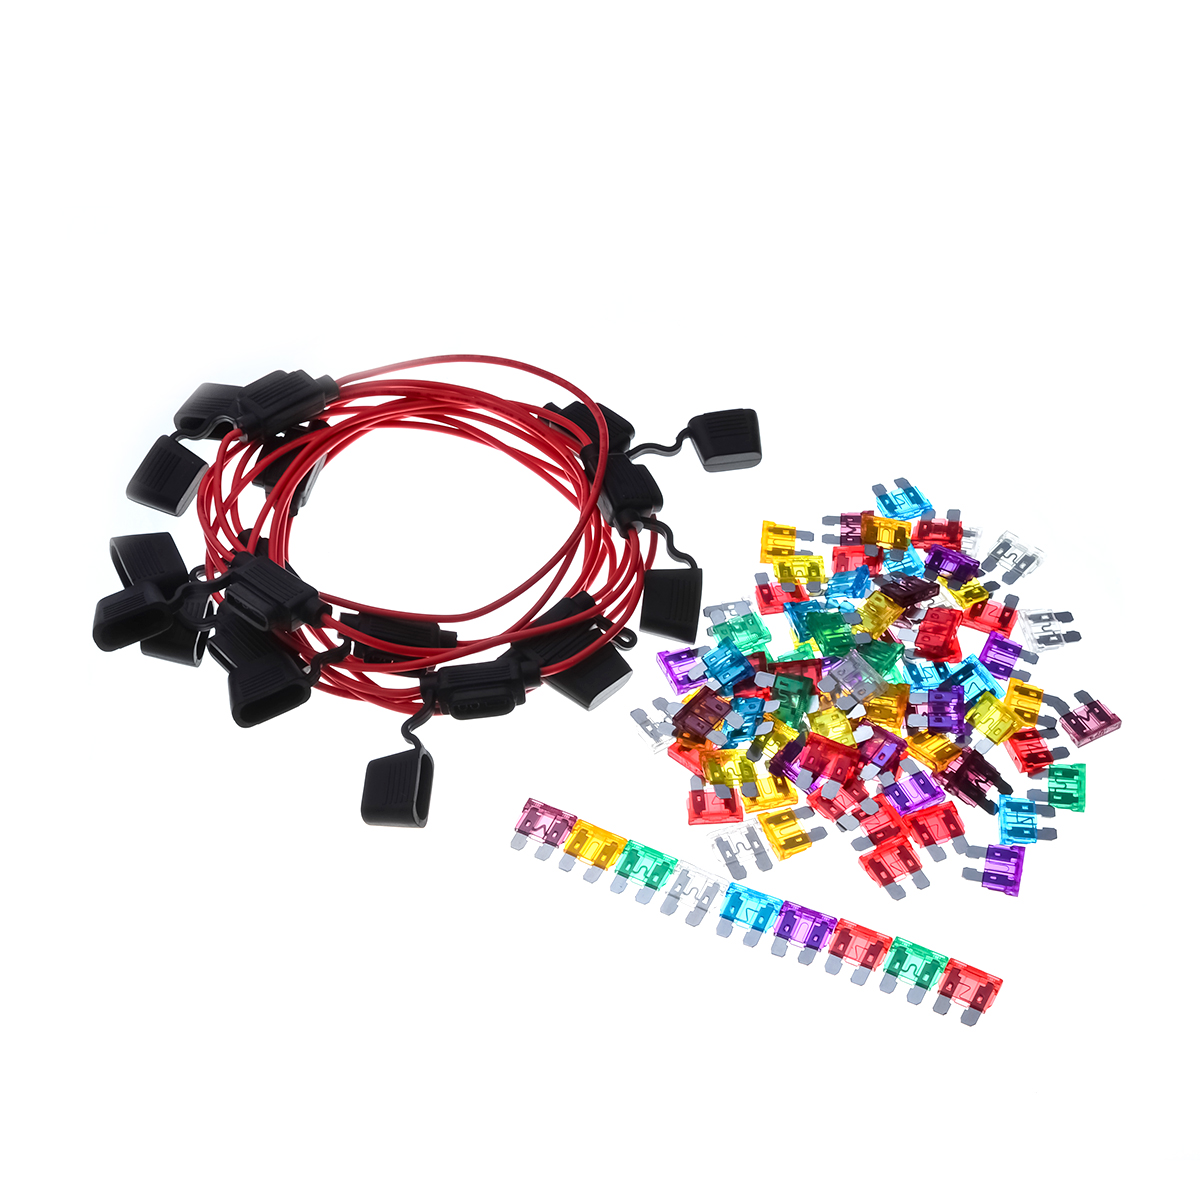 100PCS/Lot 90X ATC 8 Sizes Assorted Car Auto Truck Medium Size Blade Fuse Mix Set &10PCS 16AWG M Size Blade Fuse Holder In-Line add a circuit blade fuse holder with 30a blade fuse black medium size